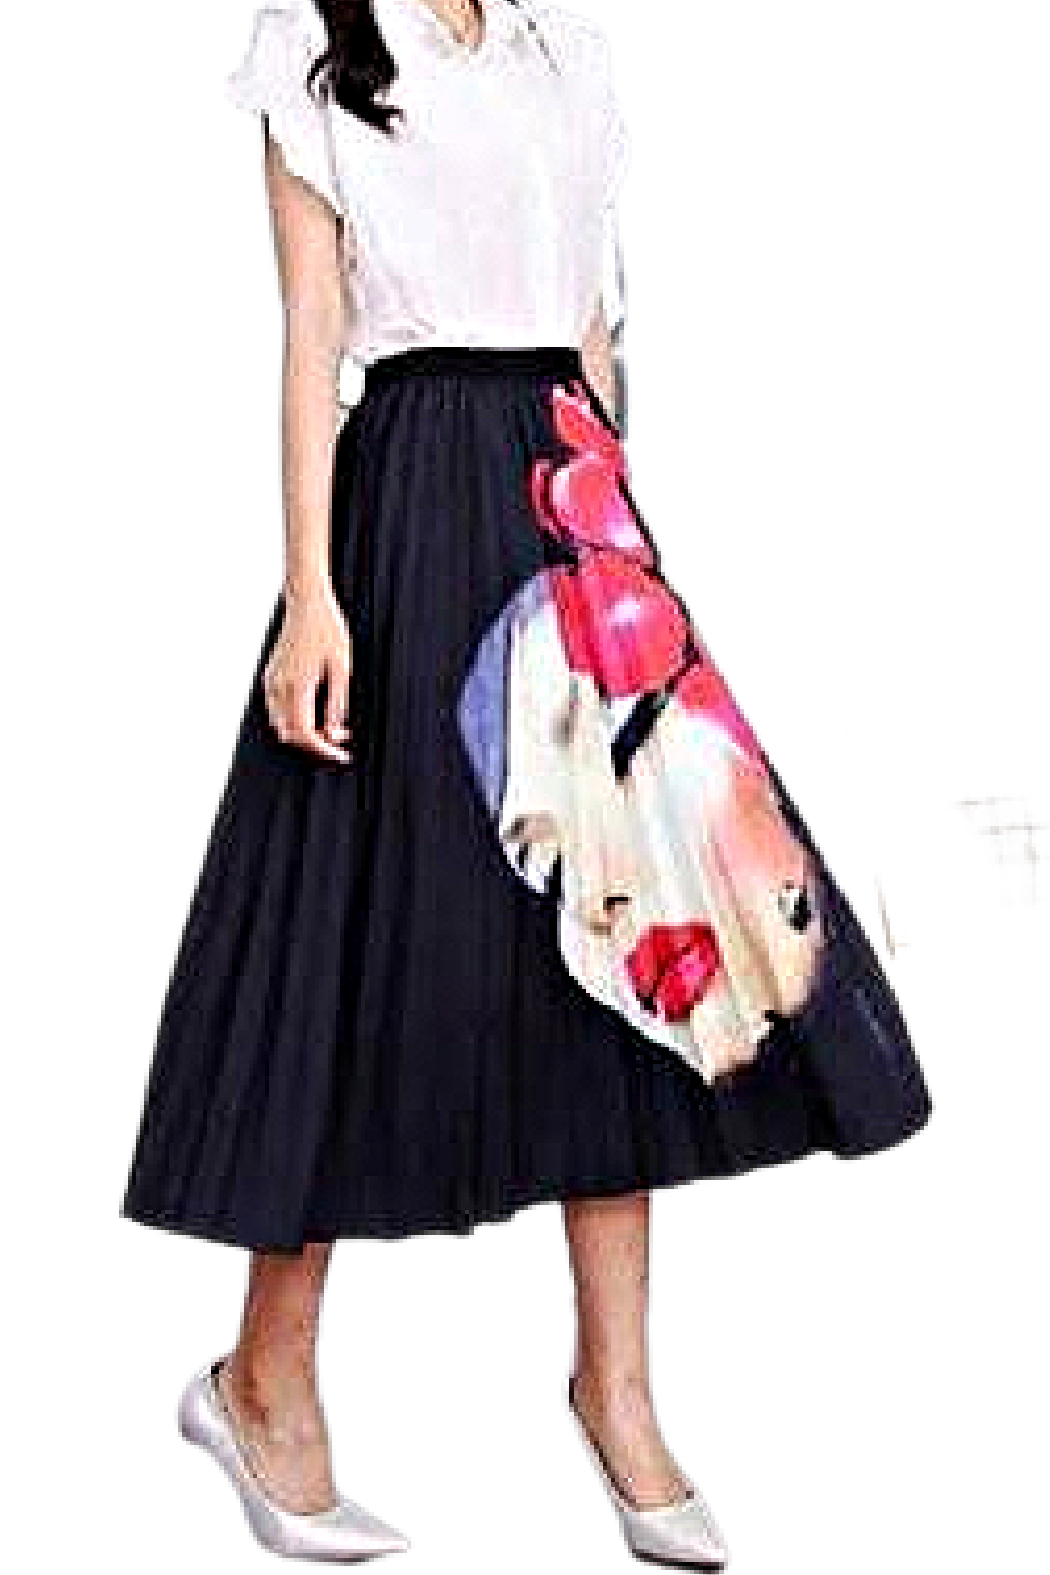 Petunias of Naples Flamenco Pleated Skirt - Main Image